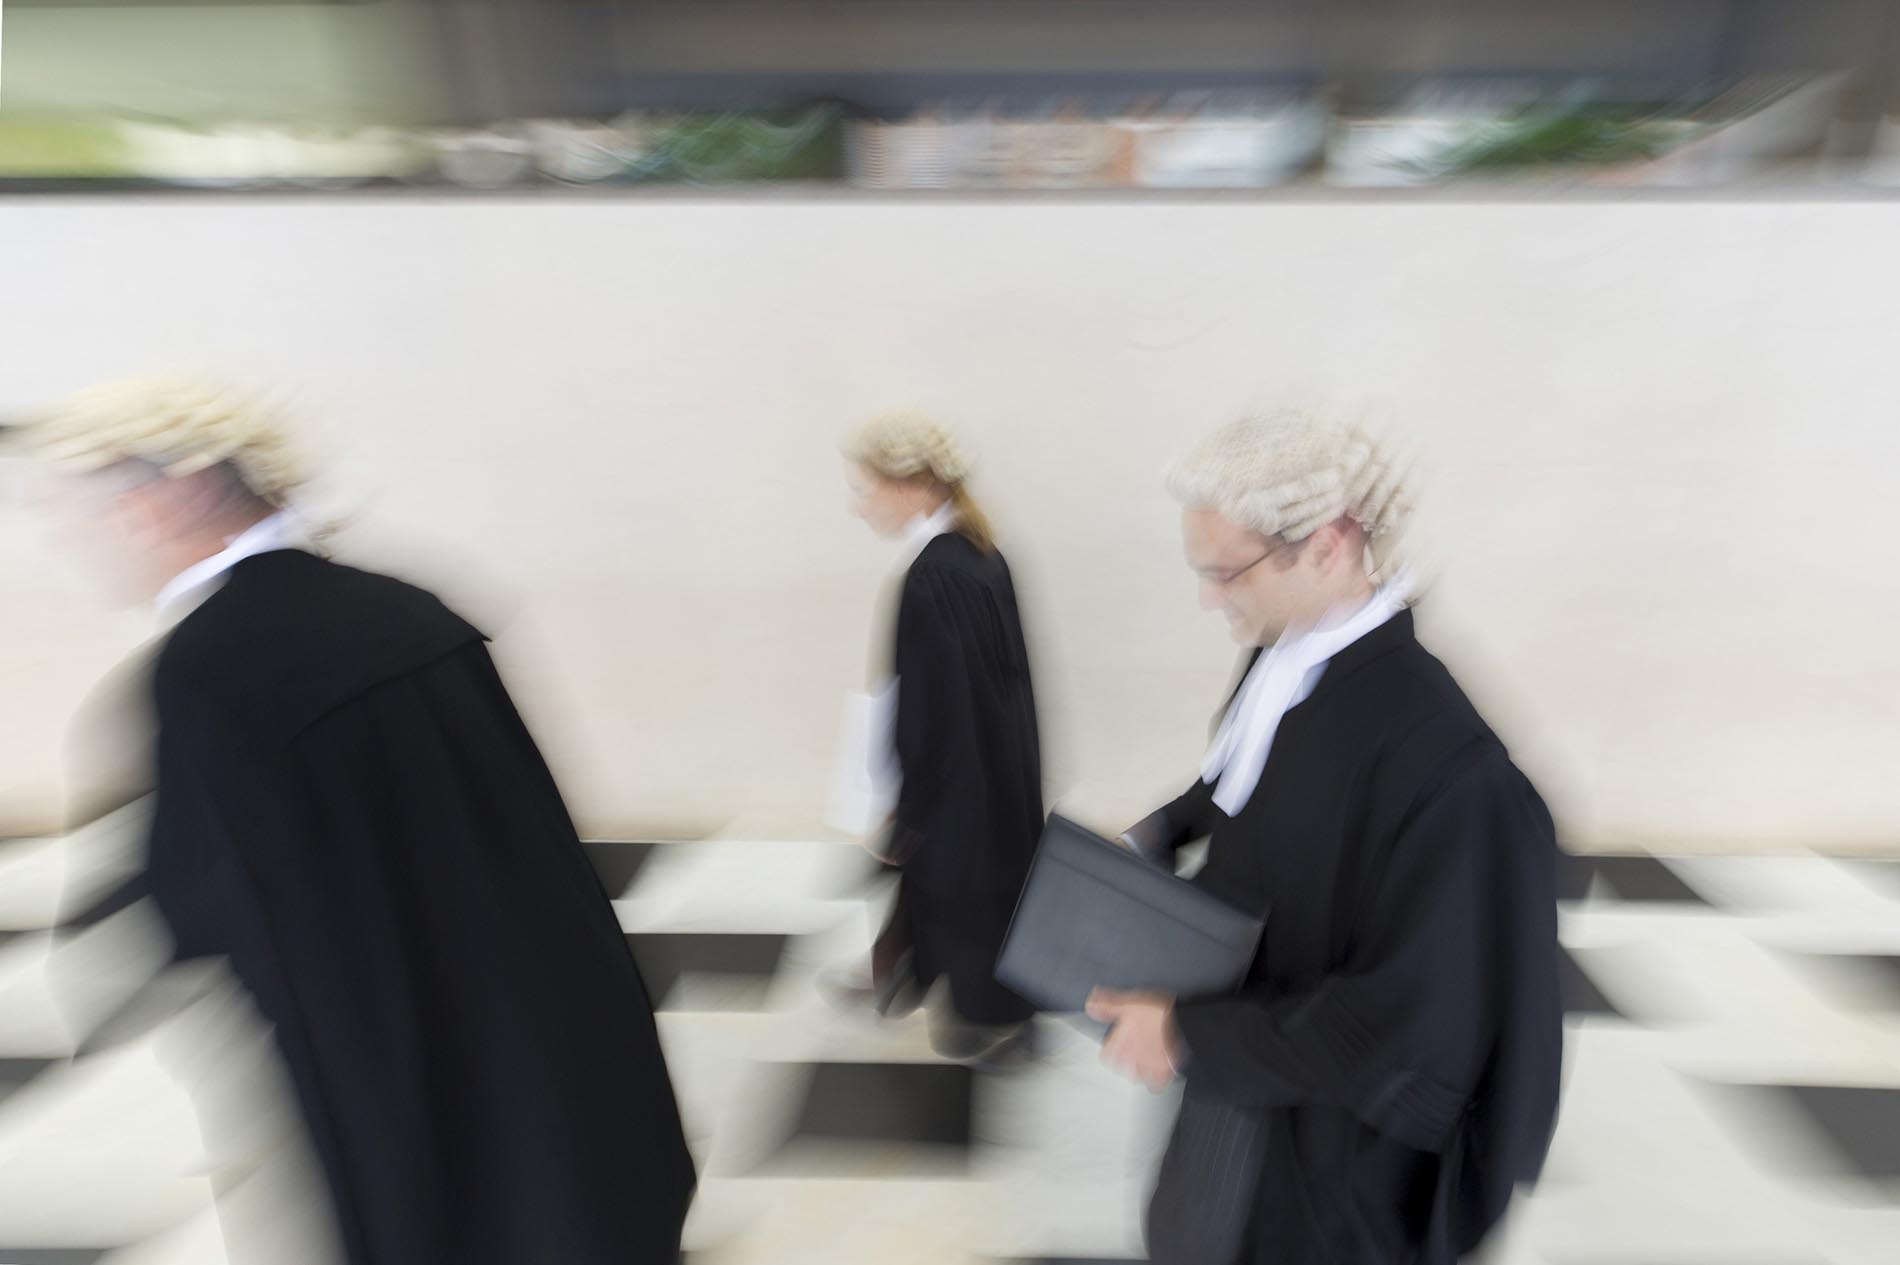 barrister-image-1